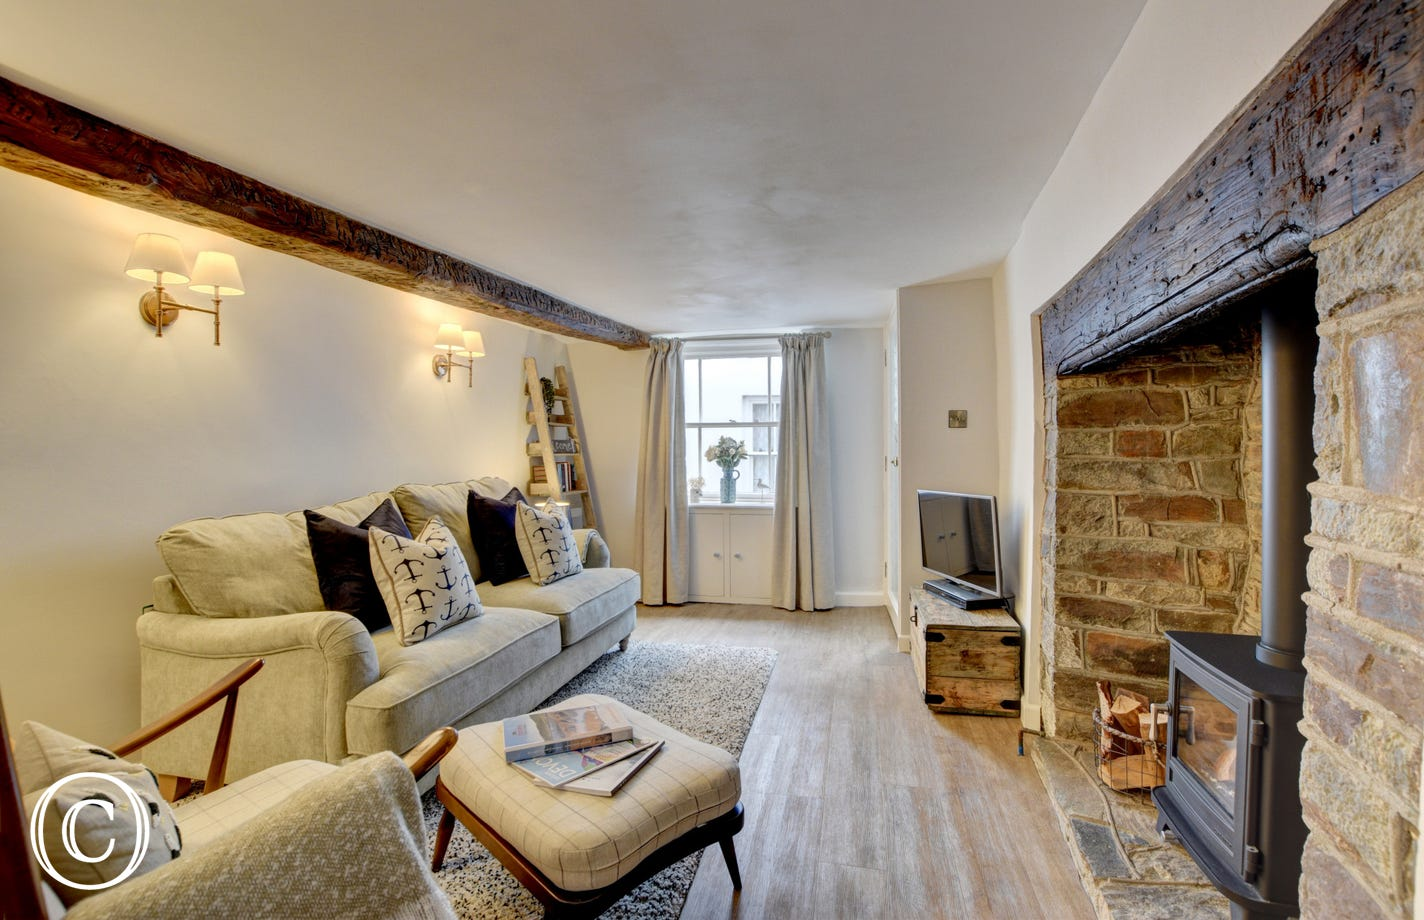 Attractive beamed living room with a woodburner in an inglenook providing a cosy focal point